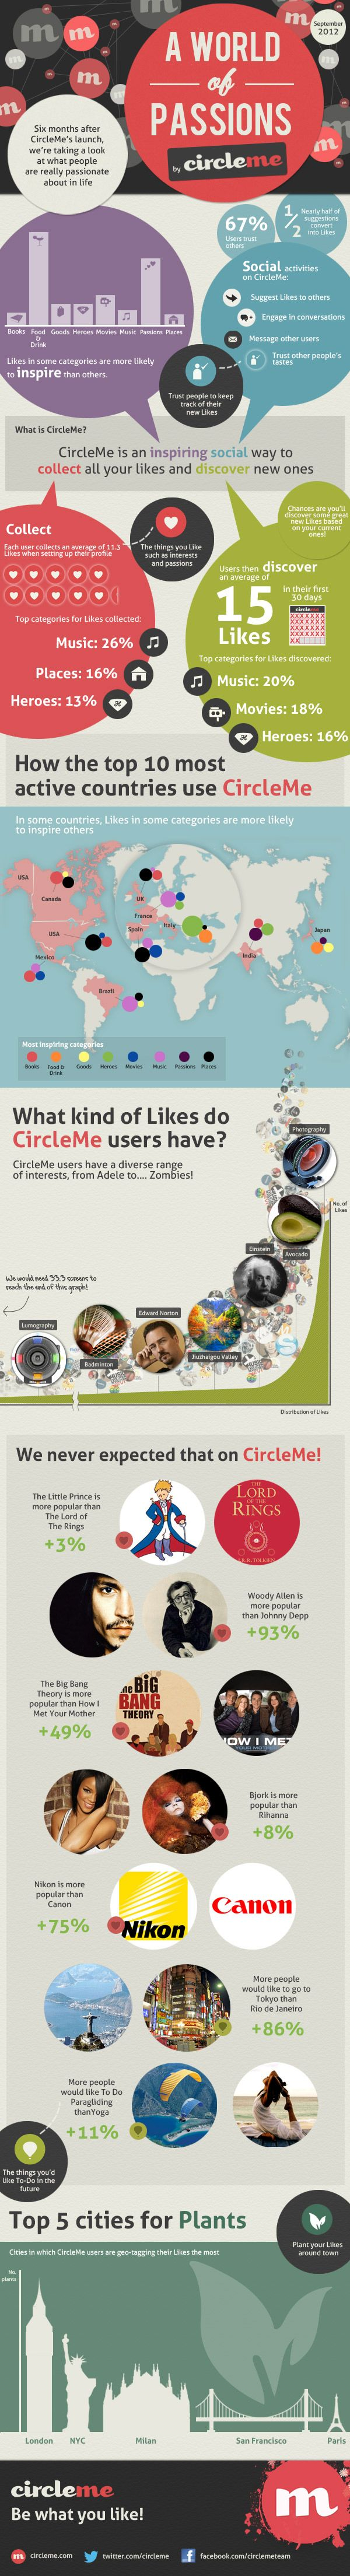 CIRCLE..ME the New SOCIAL NETWORKING ....A WORLD OF PASSIONS September 2012